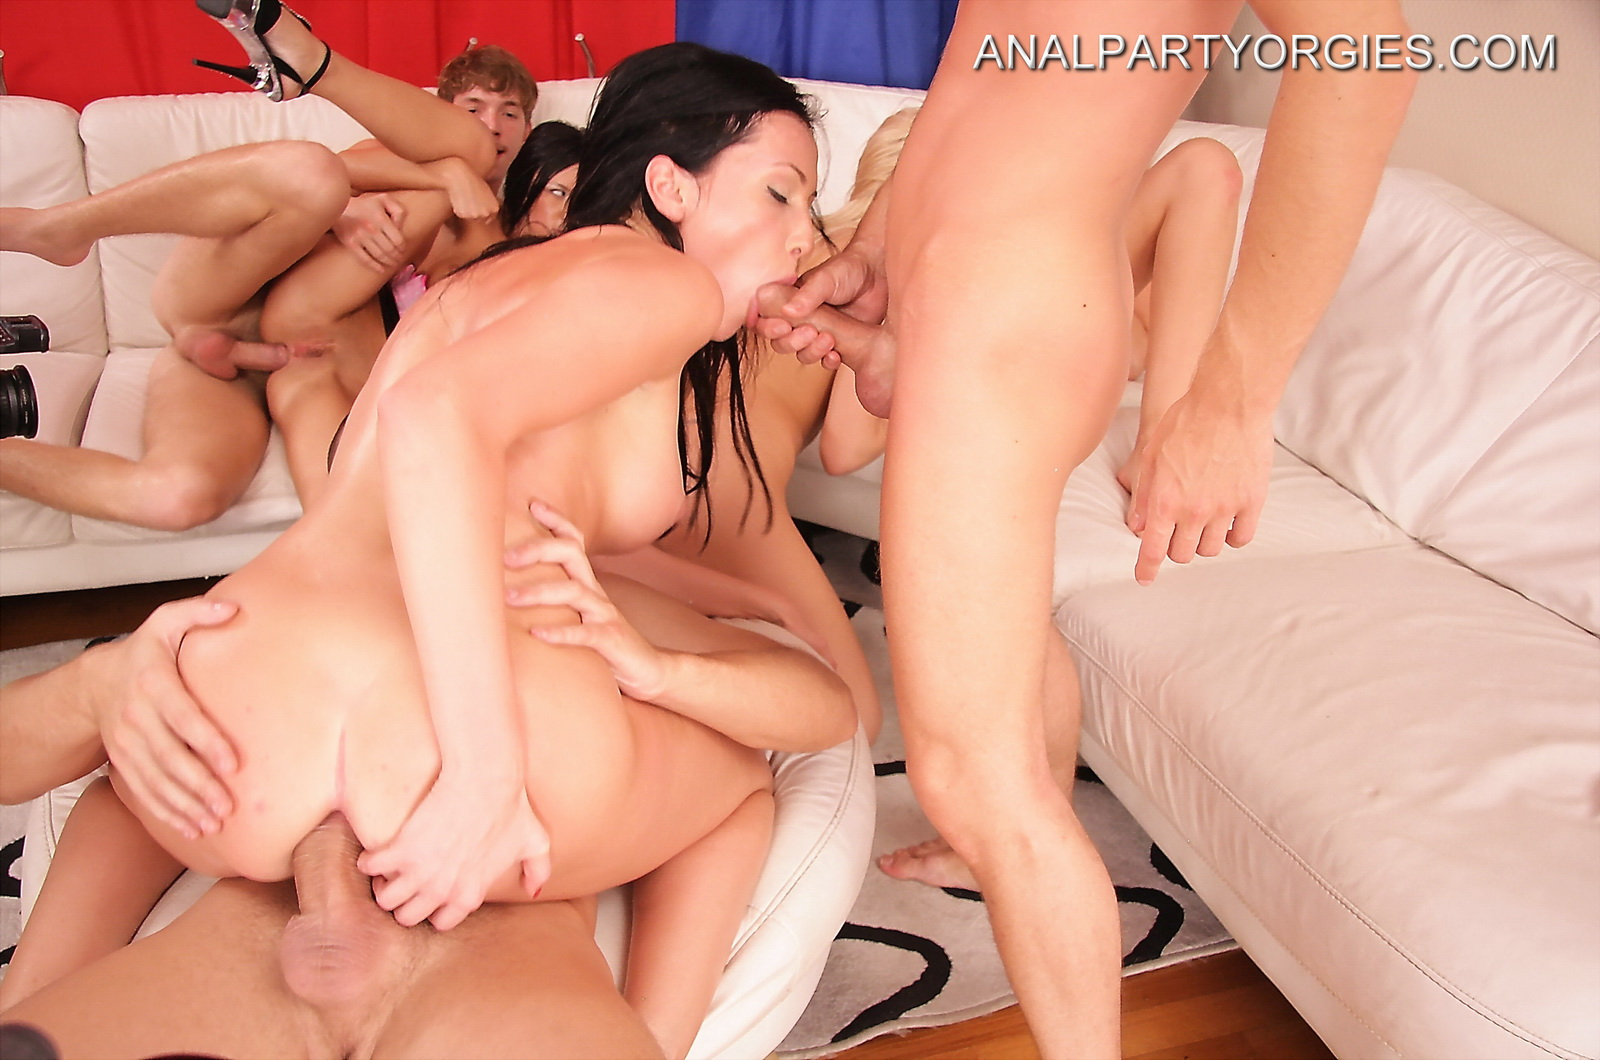 anal party porfilmer gratis